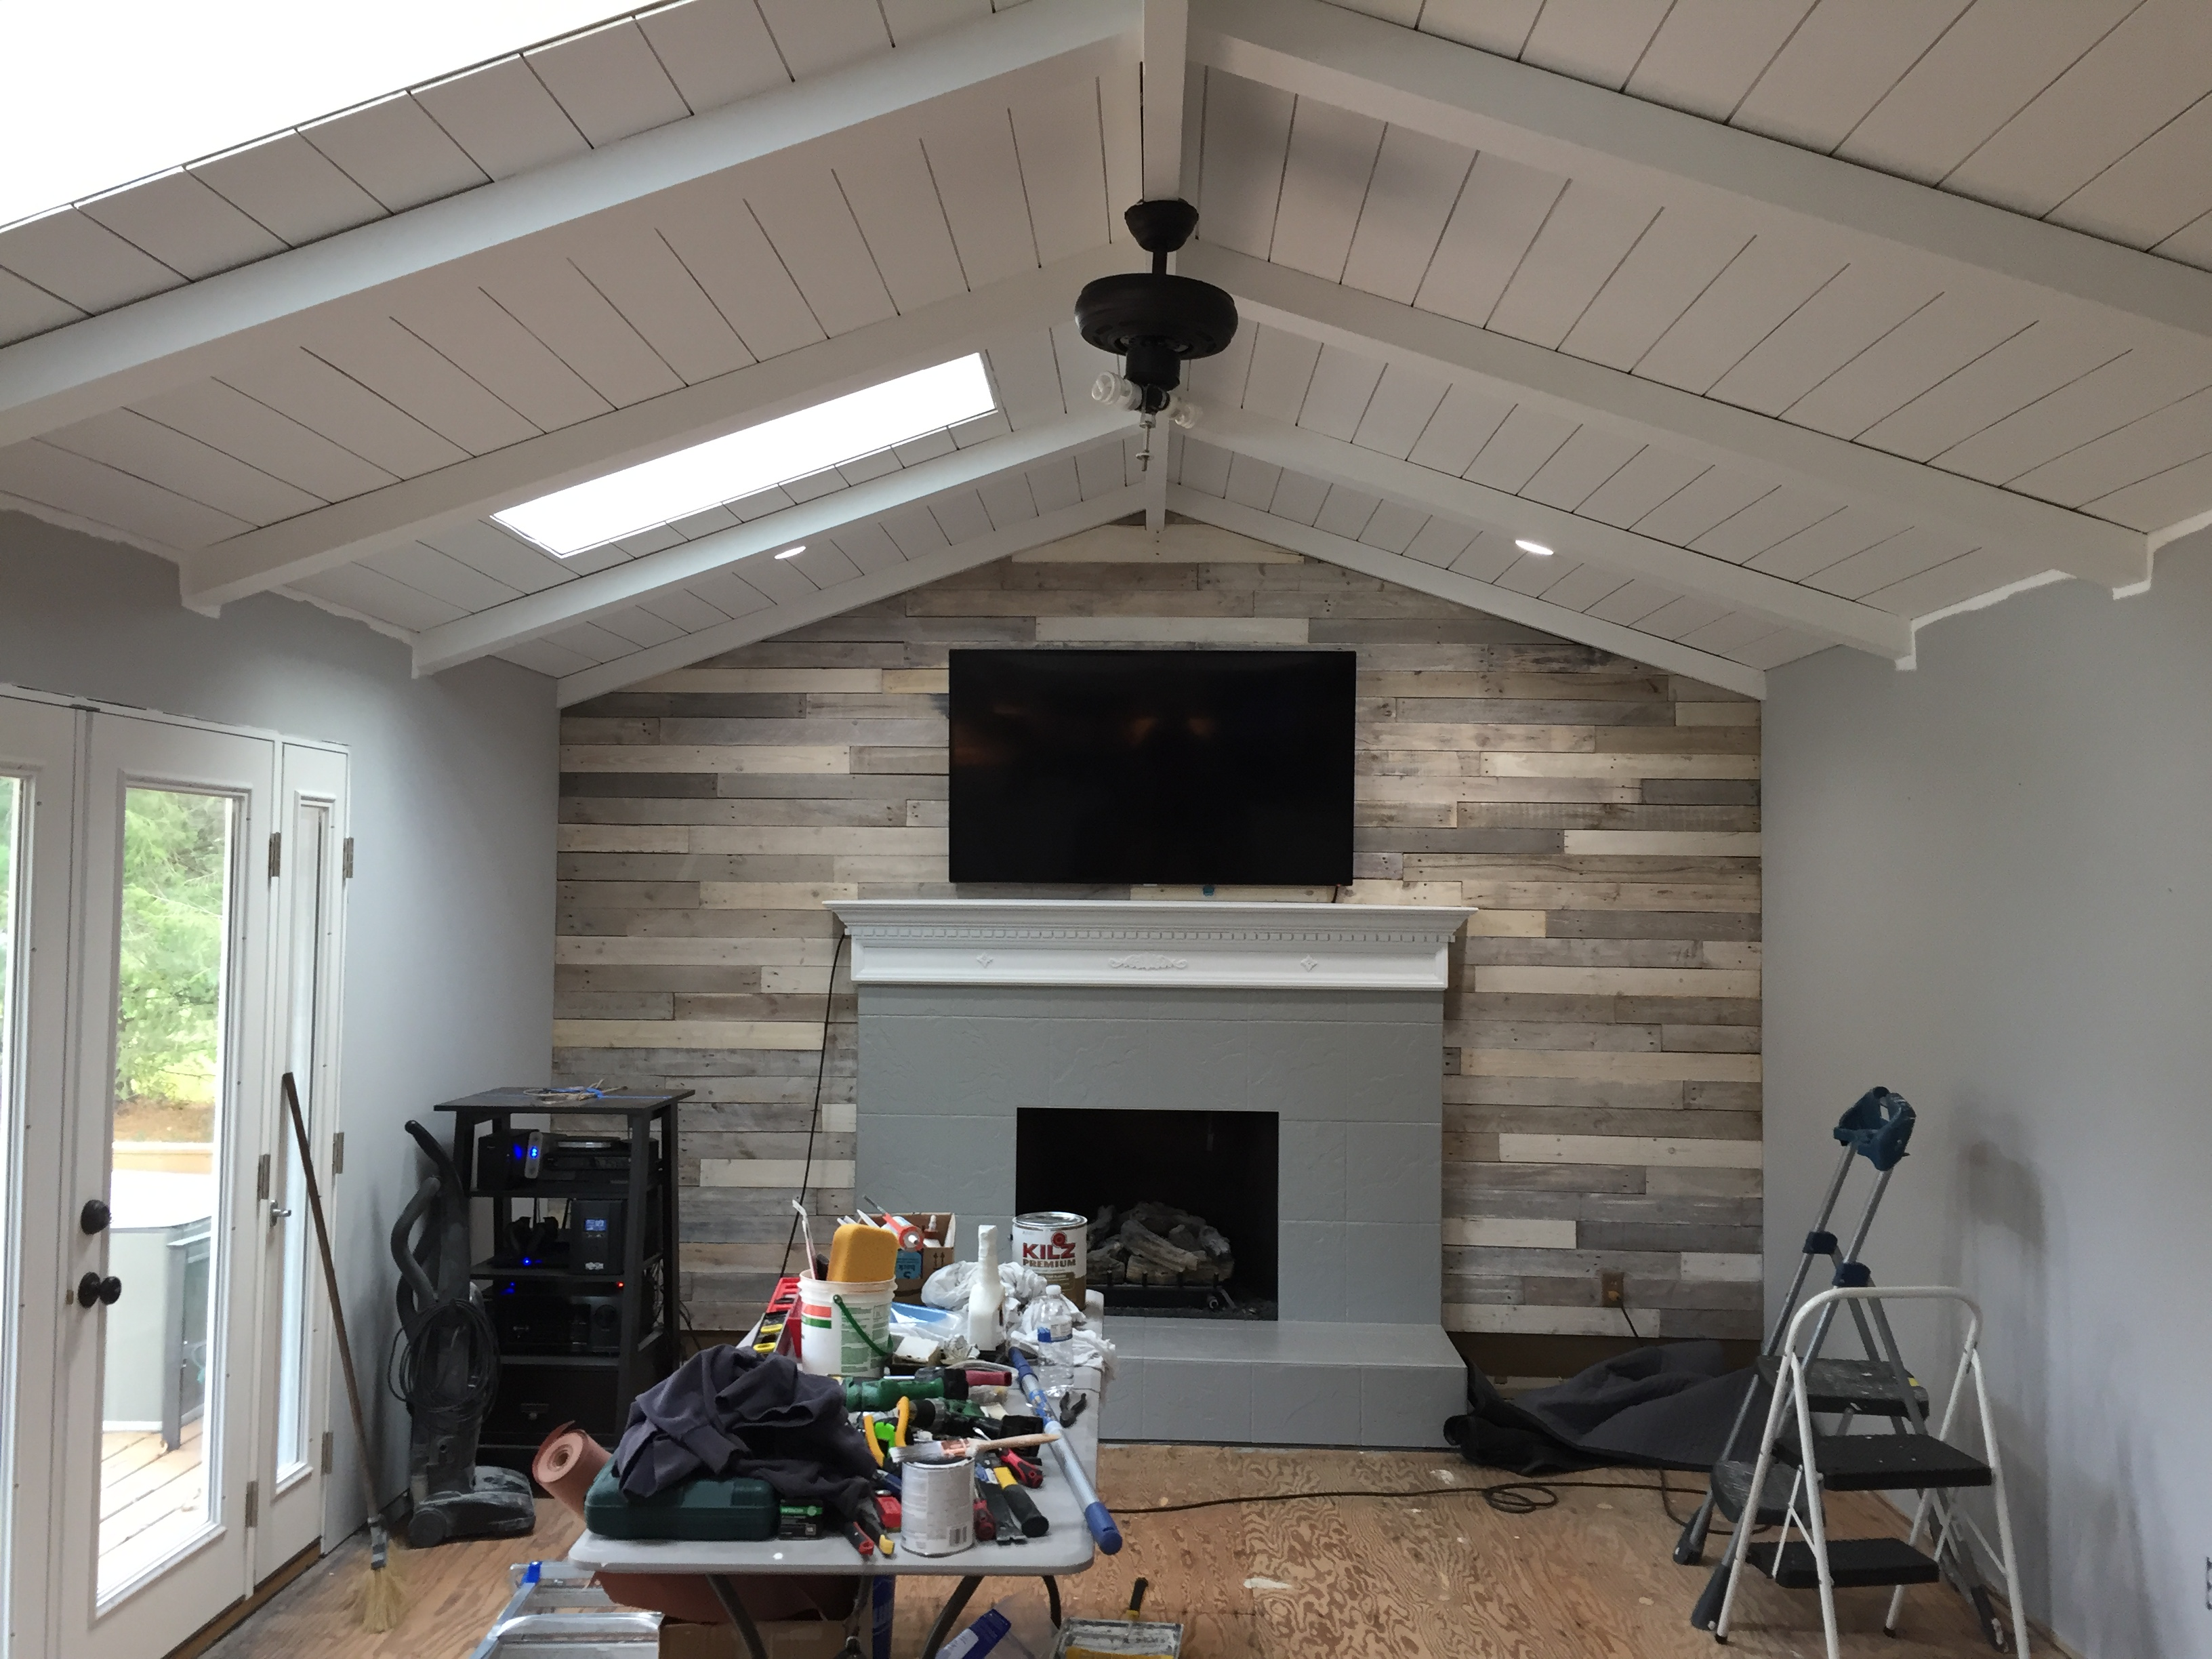 transforming warm to cool colored rooms  our french country farmhouse renovation